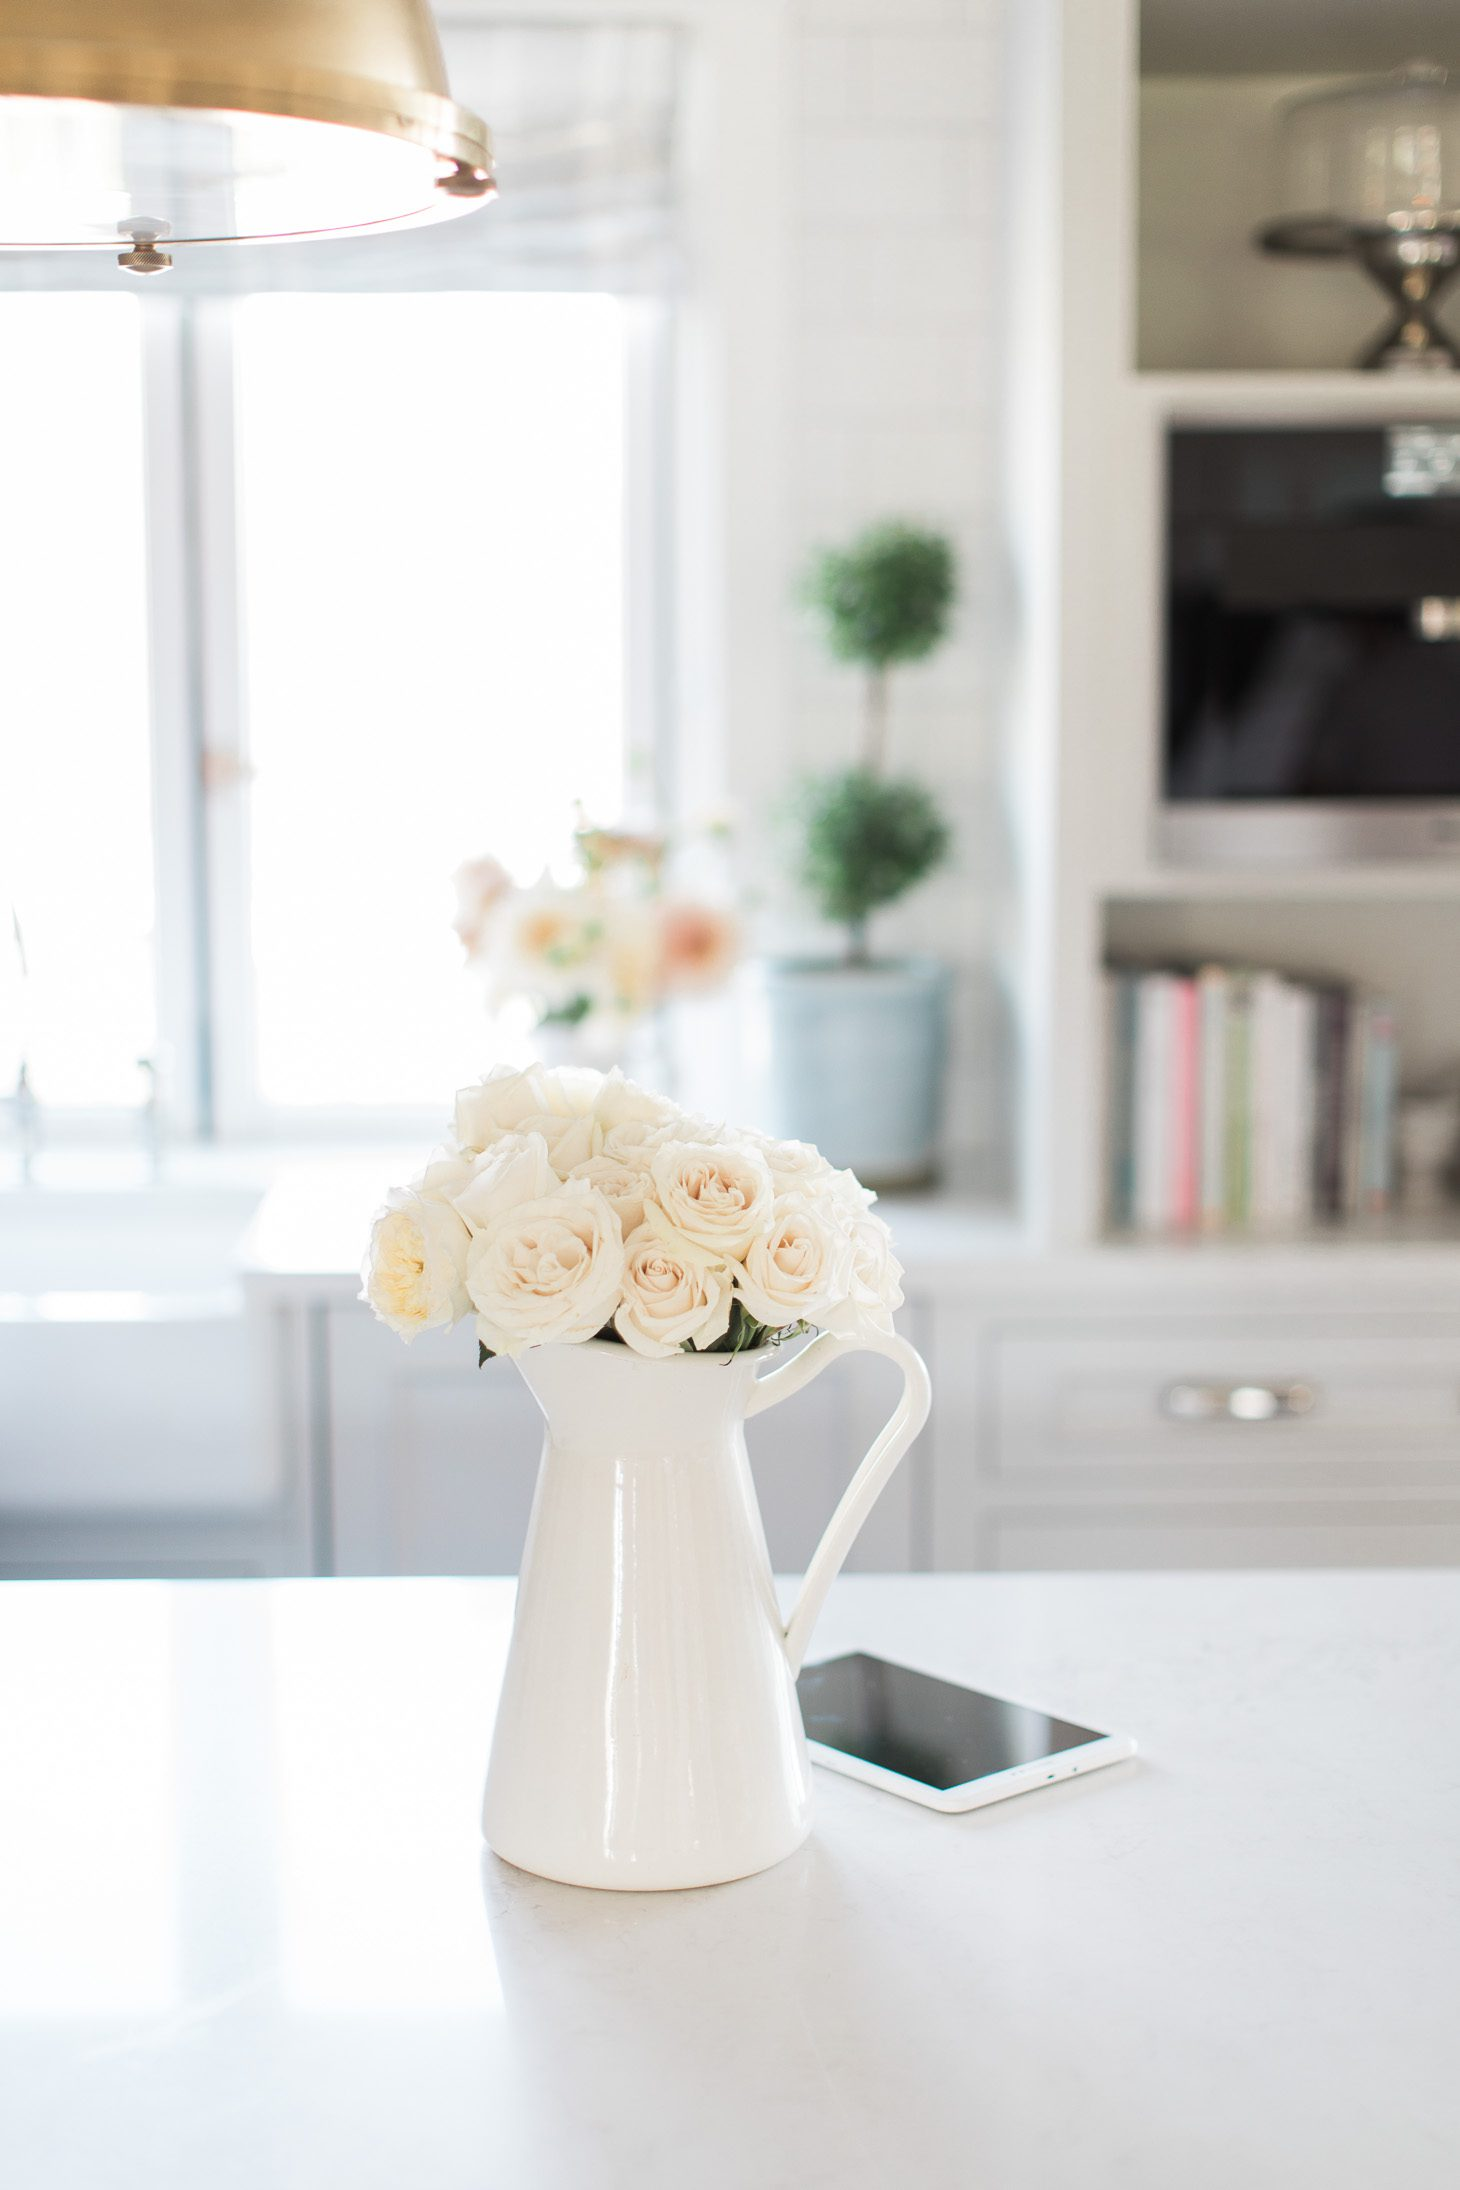 Jillian Harris Why I love My Smart Home